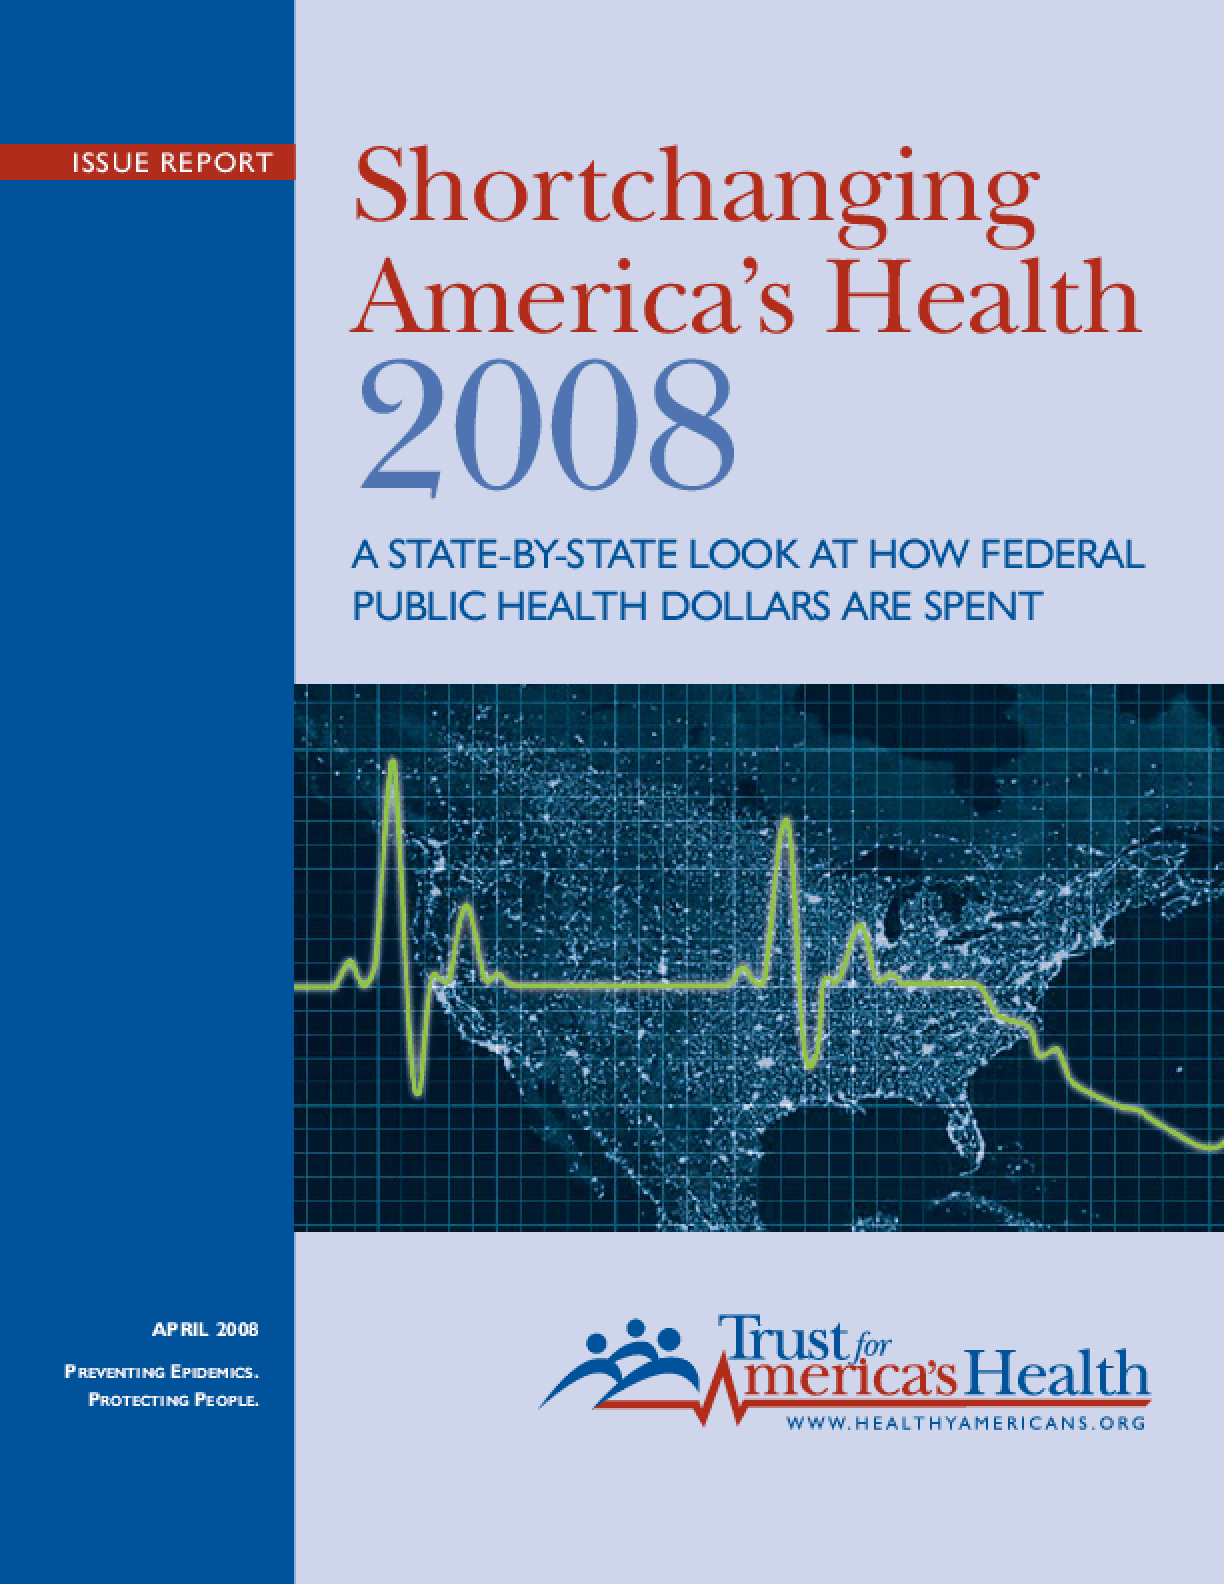 Shortchanging America's Health 2008: A State-by-State Look at How Federal Public Health Dollars Are Spent